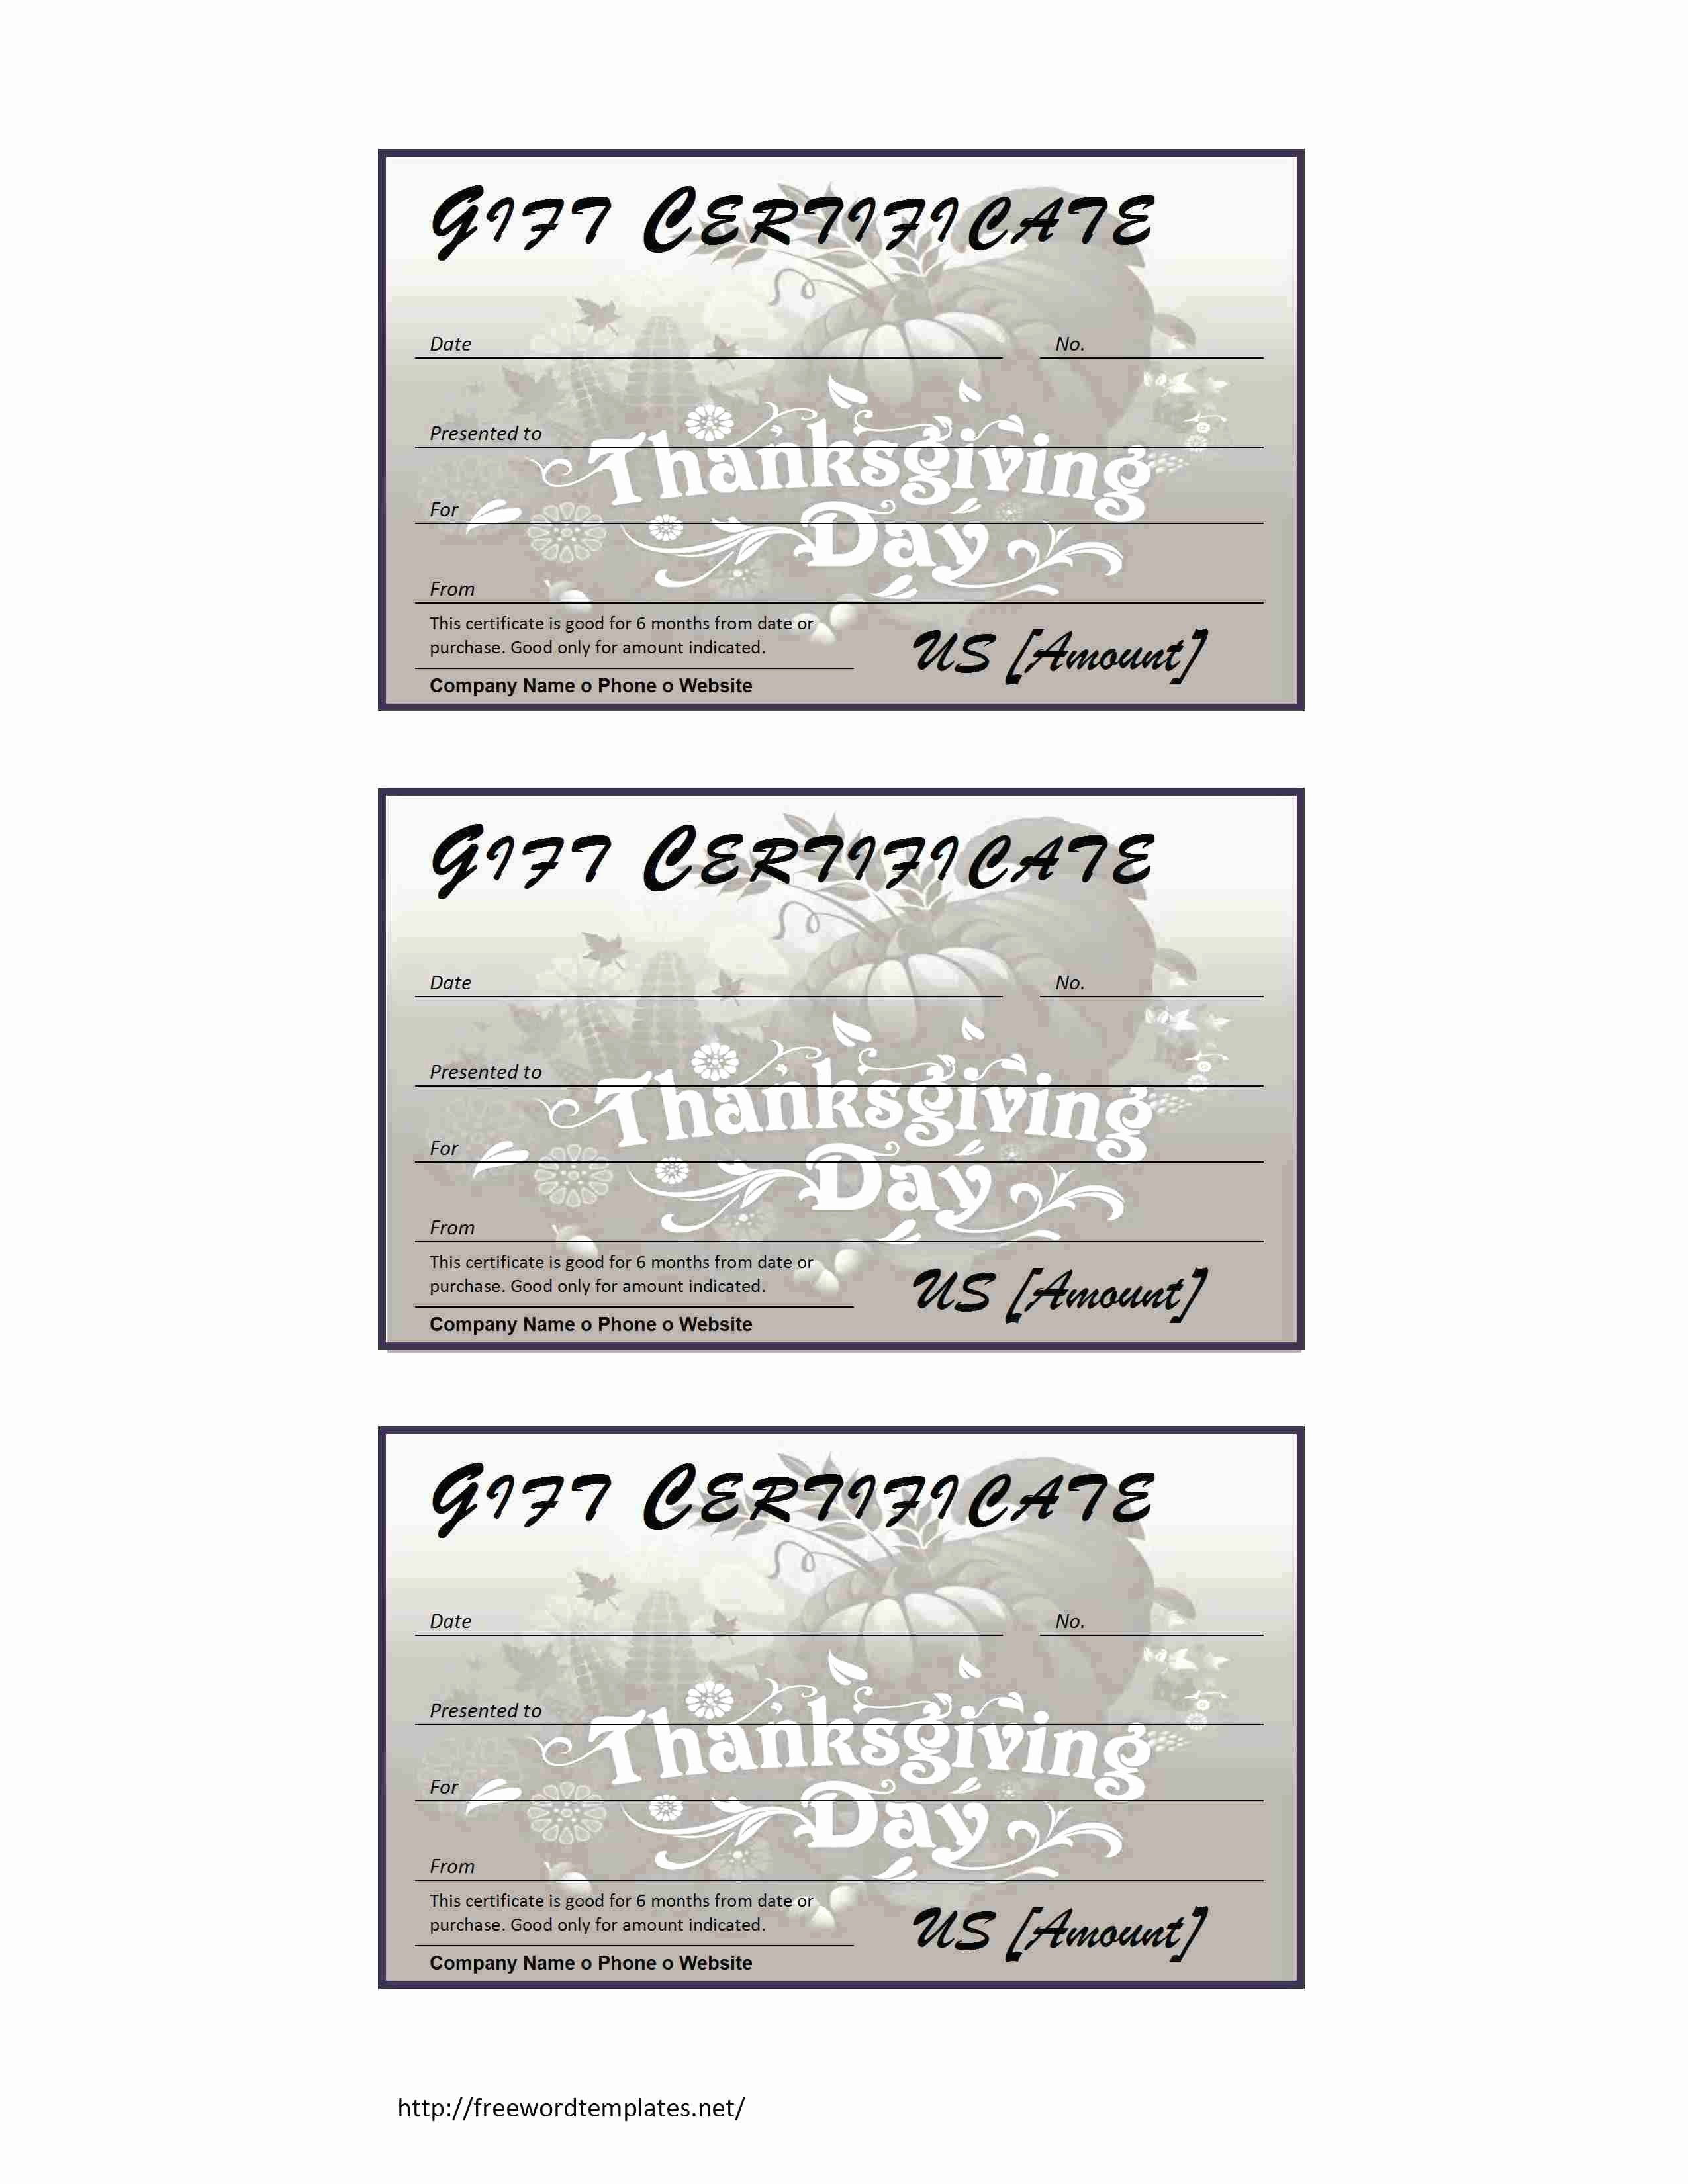 Generic Gift Certificates Print Free Awesome Template Generic Gift Certificate Template